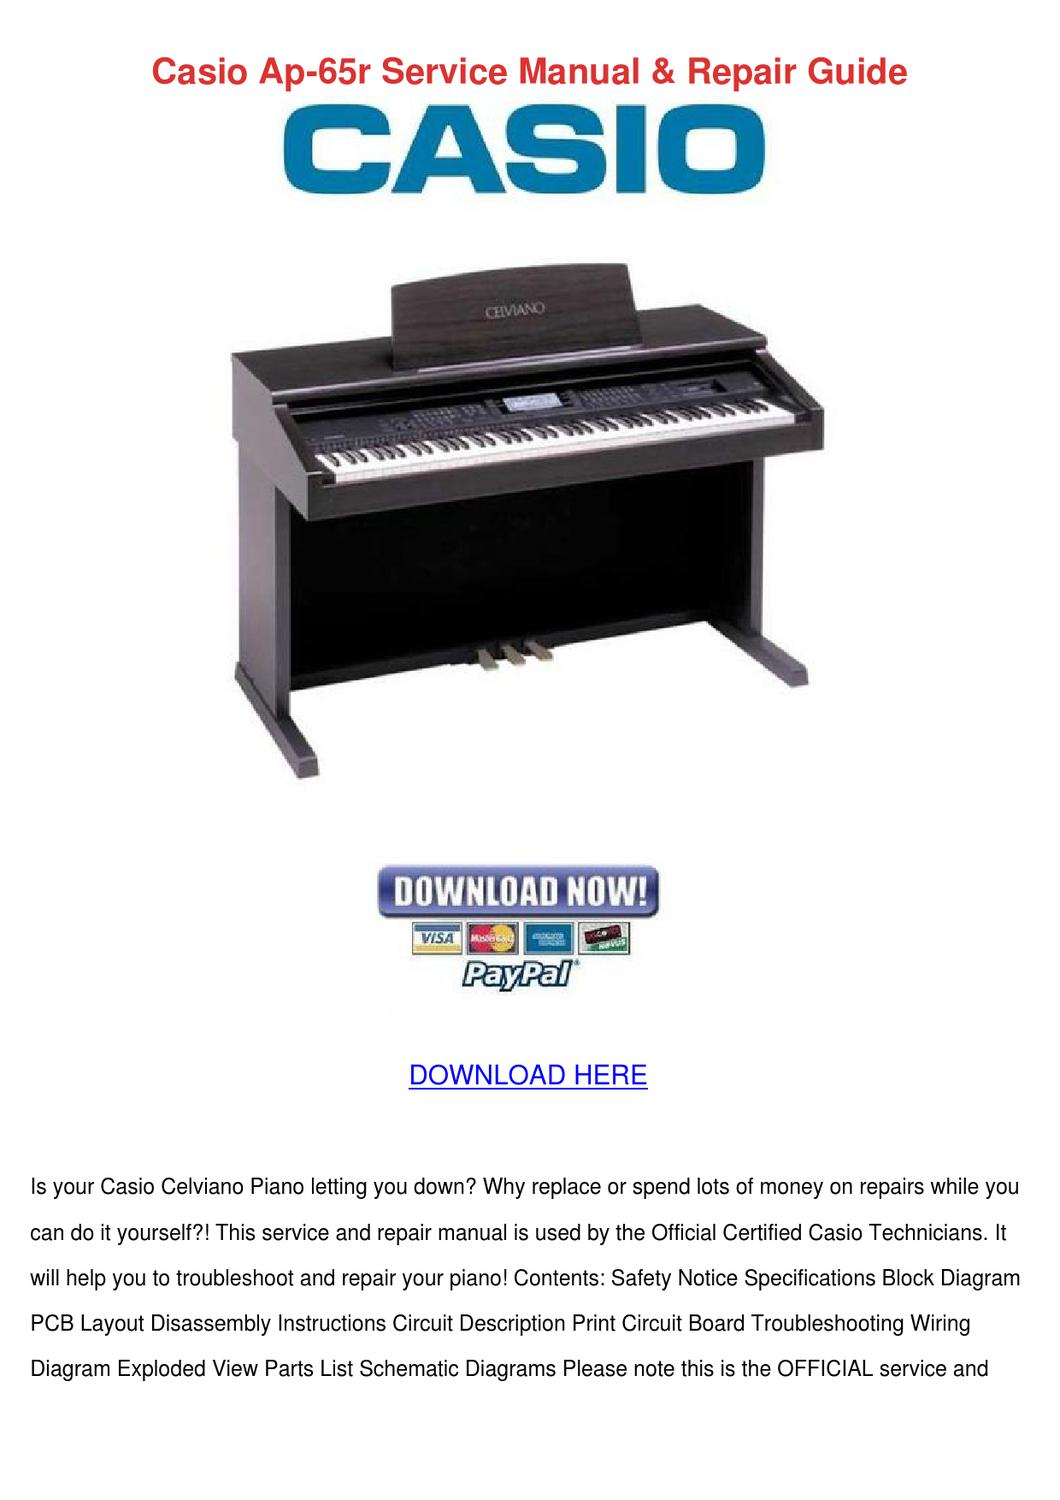 Casio Ap 65r Service Manual Repair Guide by DanielaCasteel - issuu